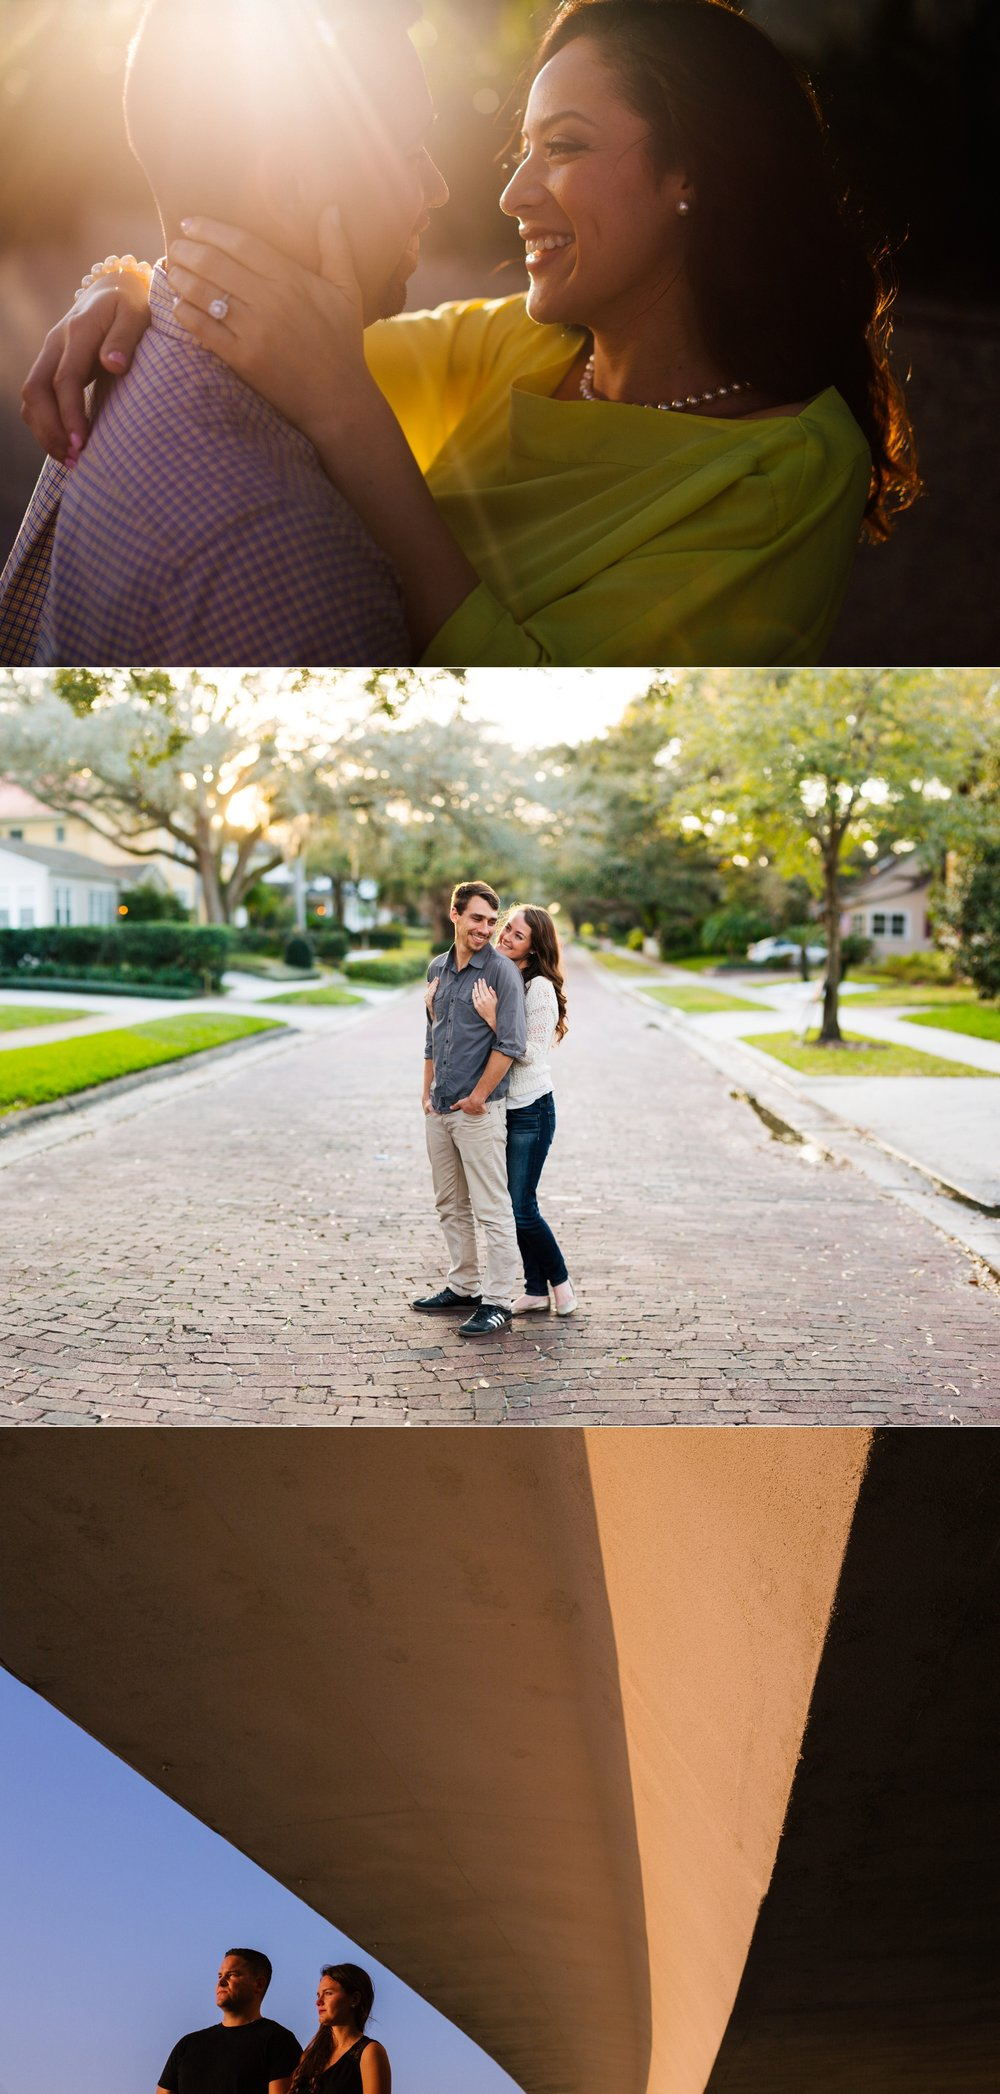 Jake & Katie Photography Best of Couples 2016-012.jpg